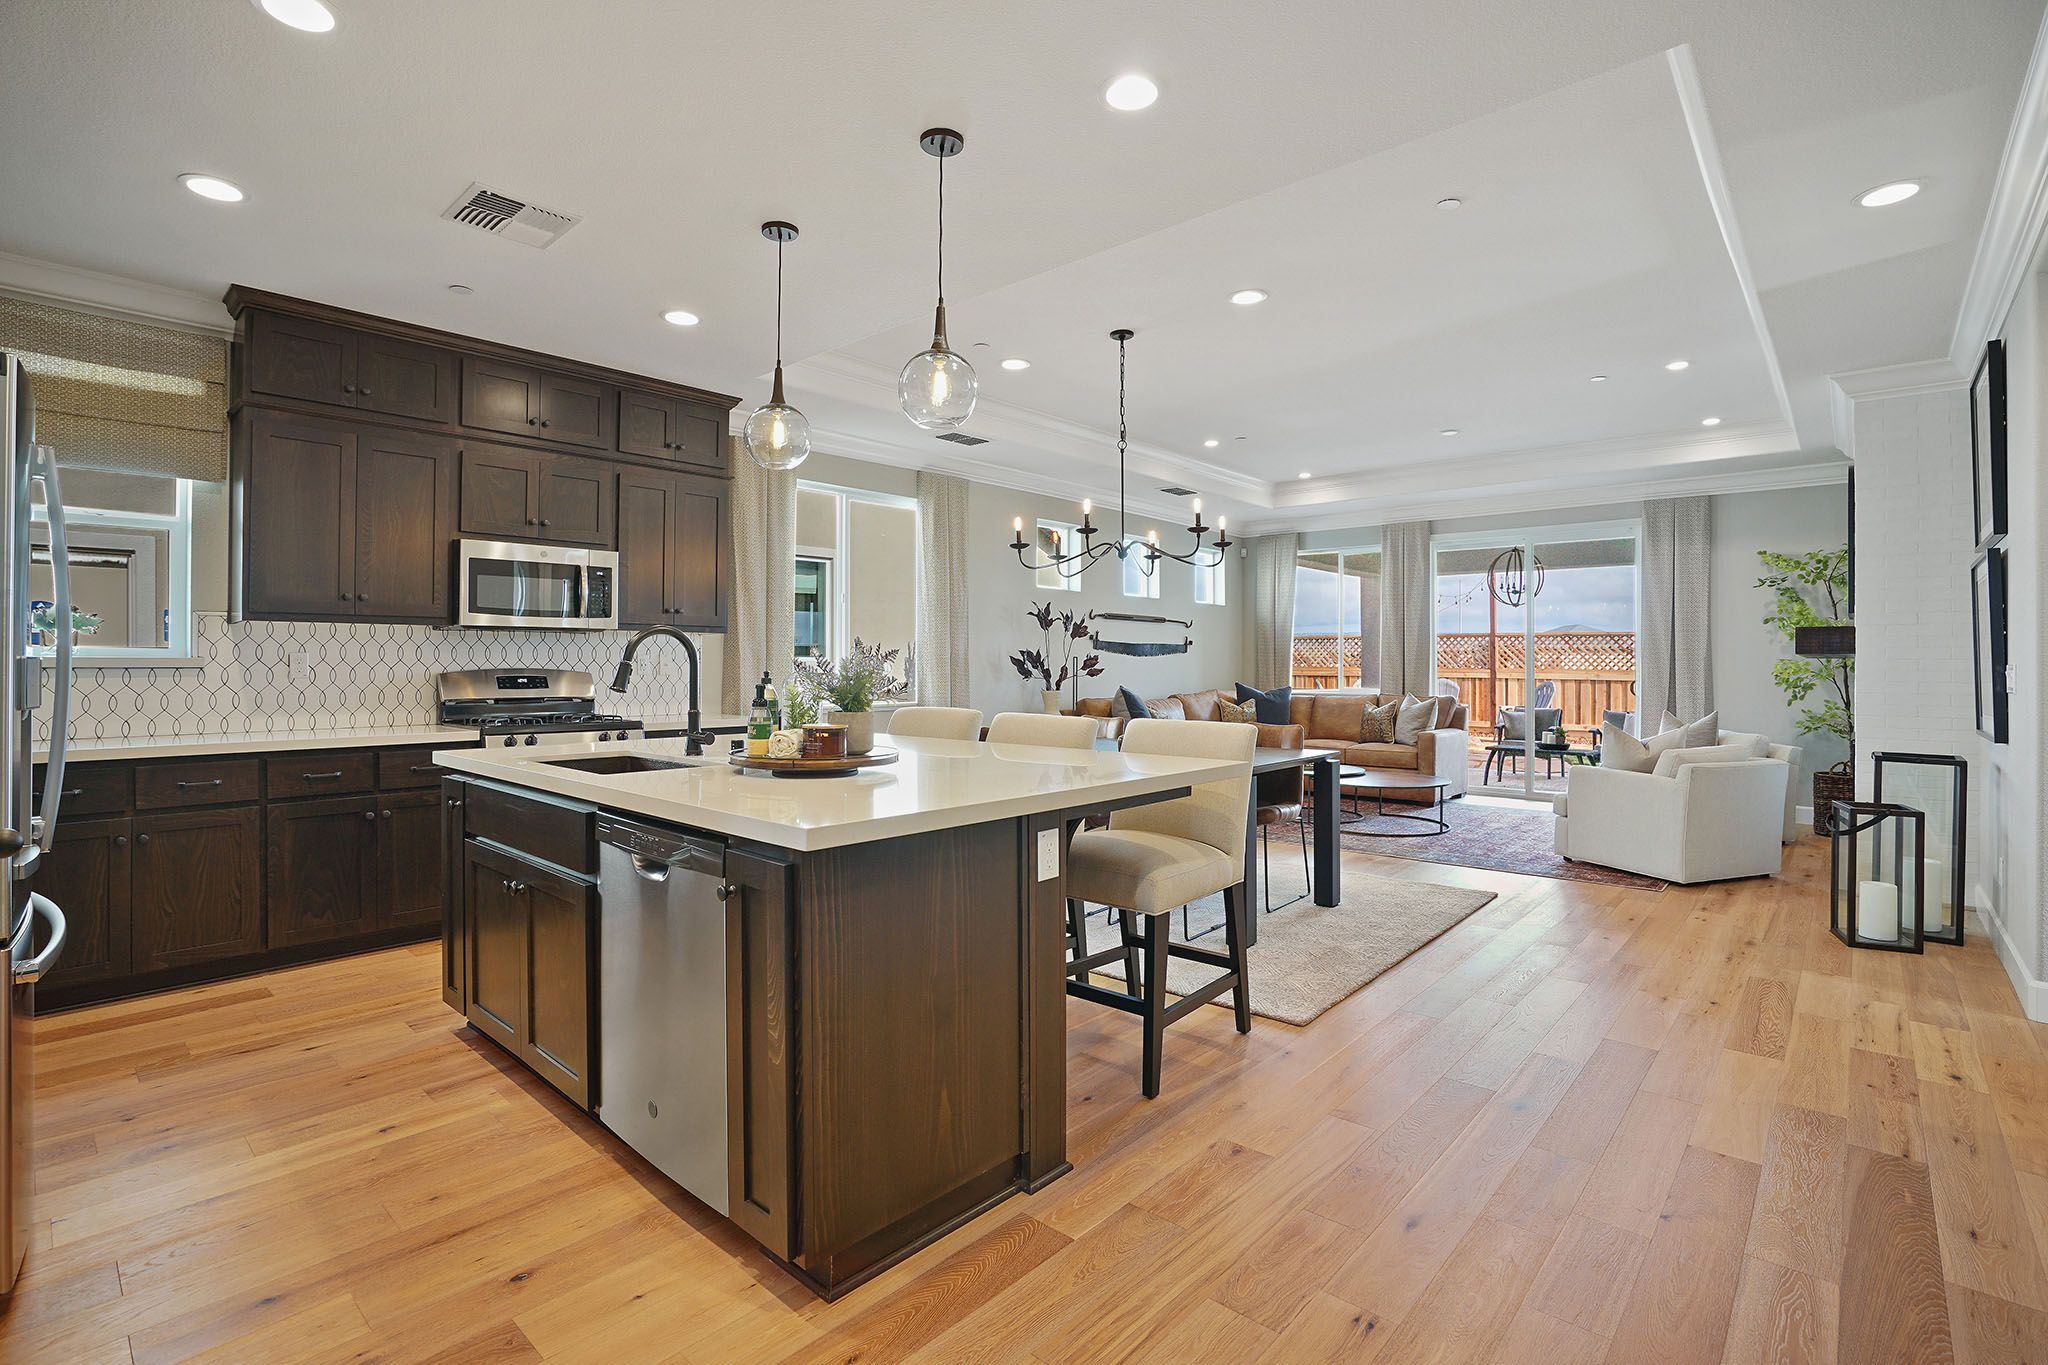 Kitchen featured in the Whitney By Discovery Homes in Chico, CA